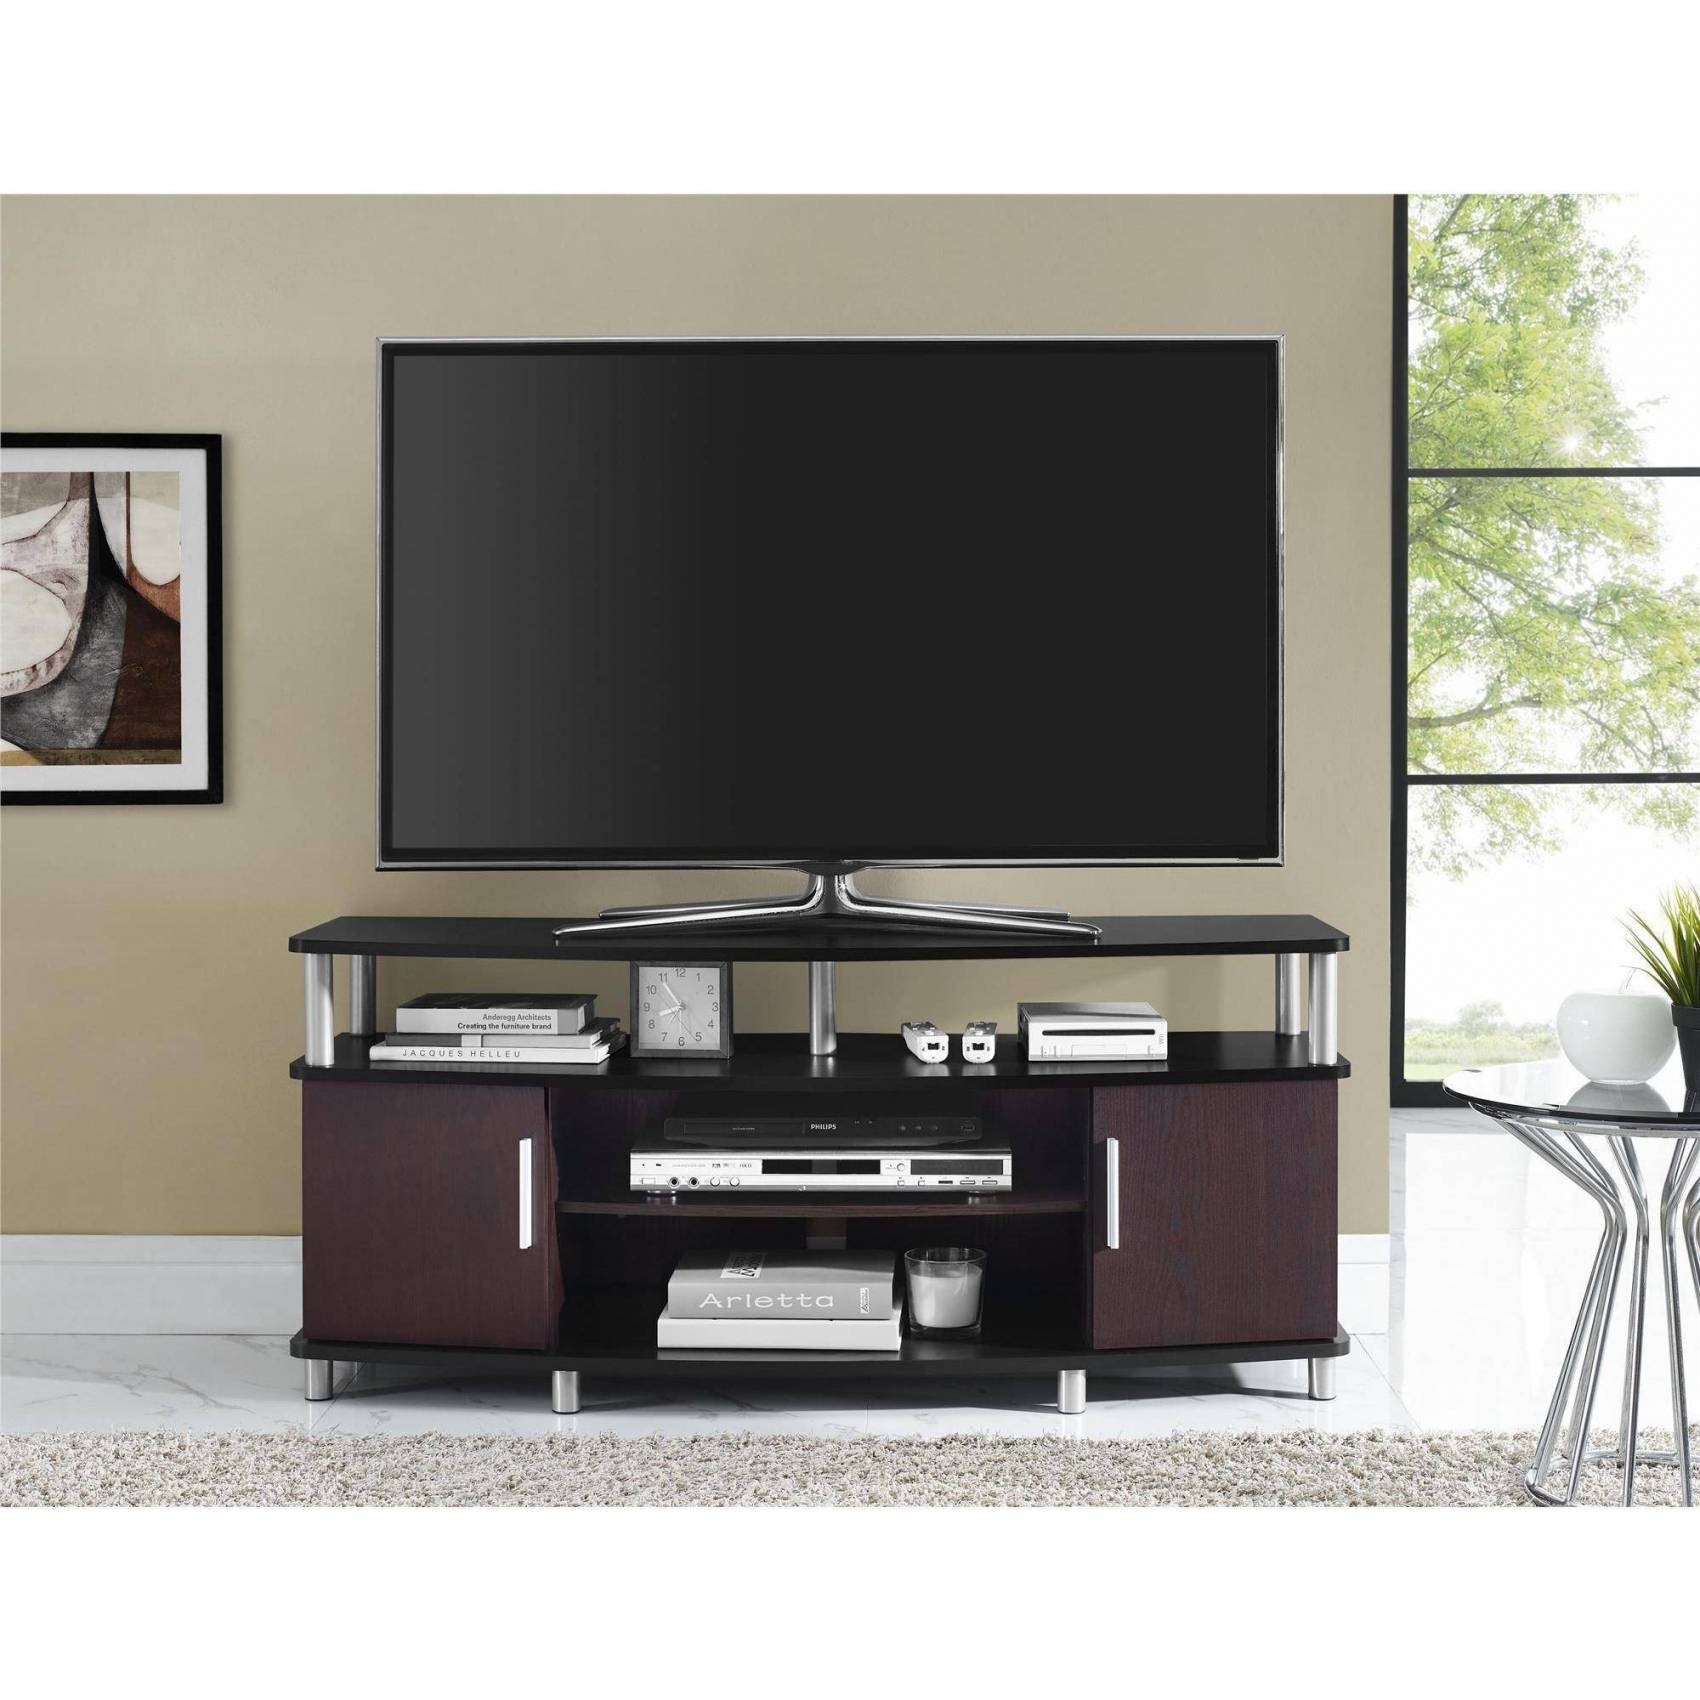 Modern Tv Stands For 55 Inch Flat Screen Tv Inspirational intended for Modern Tv Stands for Flat Screens (Image 8 of 15)